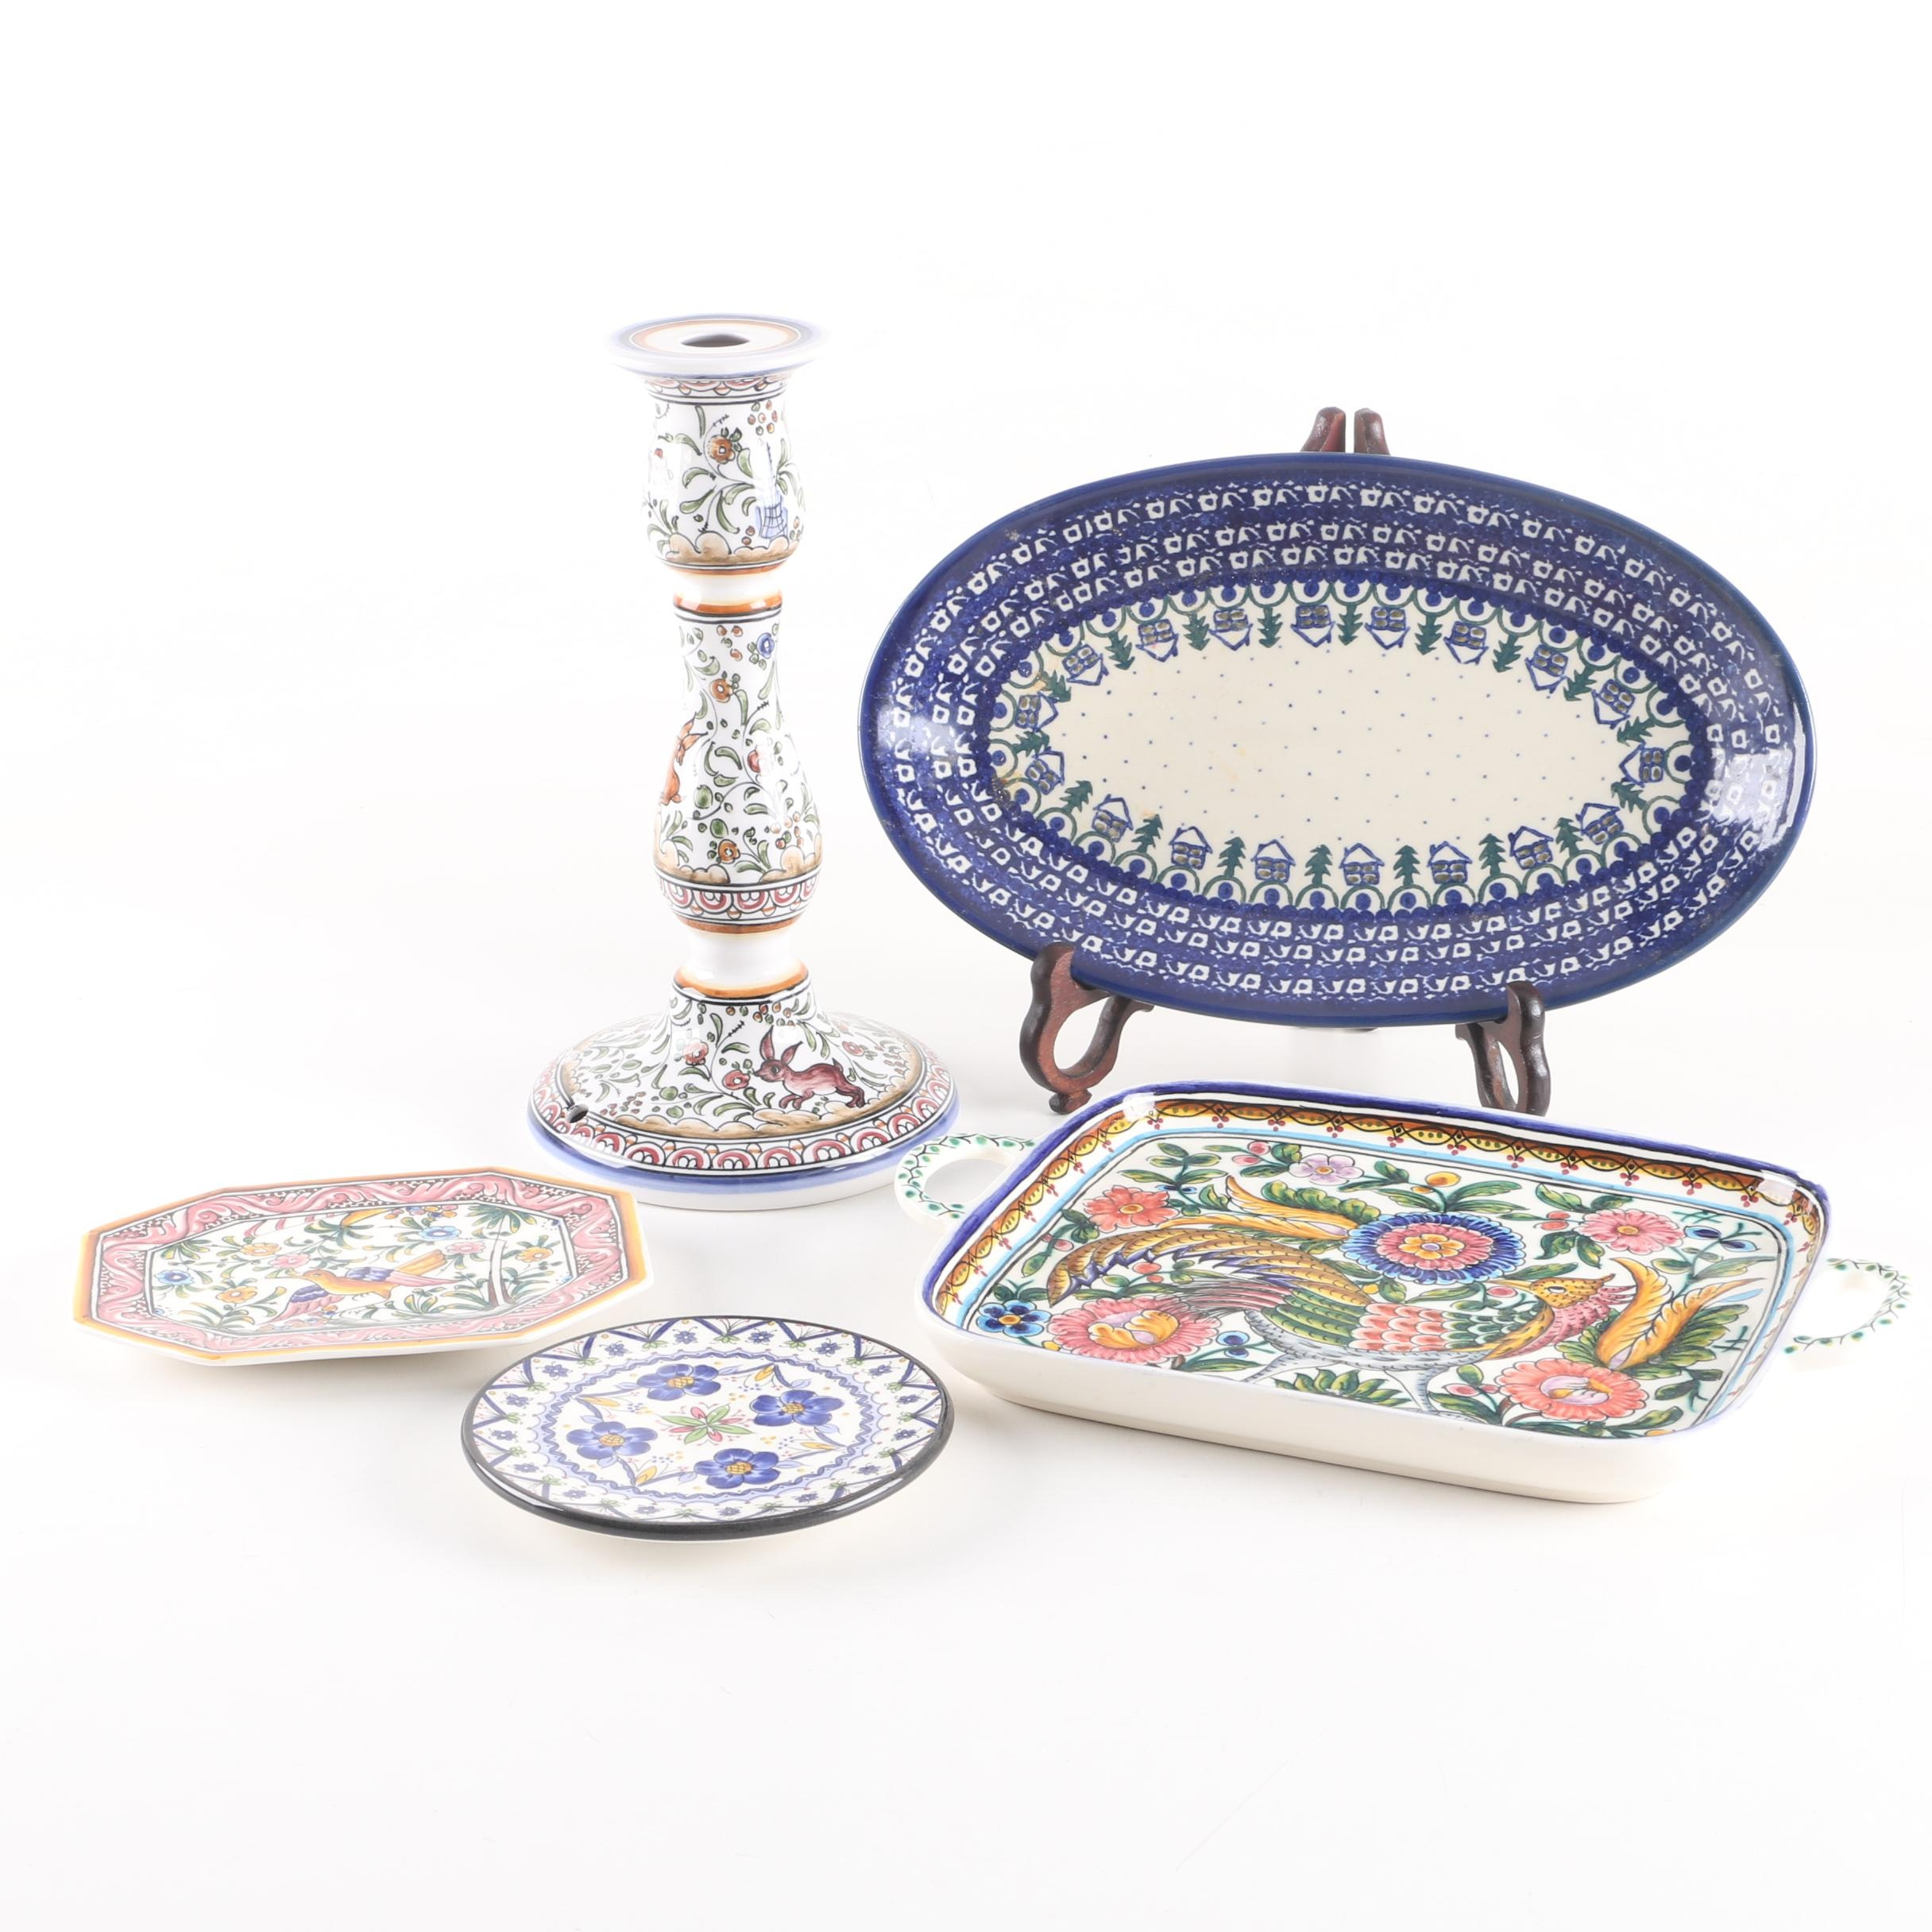 Hand-Painted Majolica Platters, Vessels, and a Candlestick